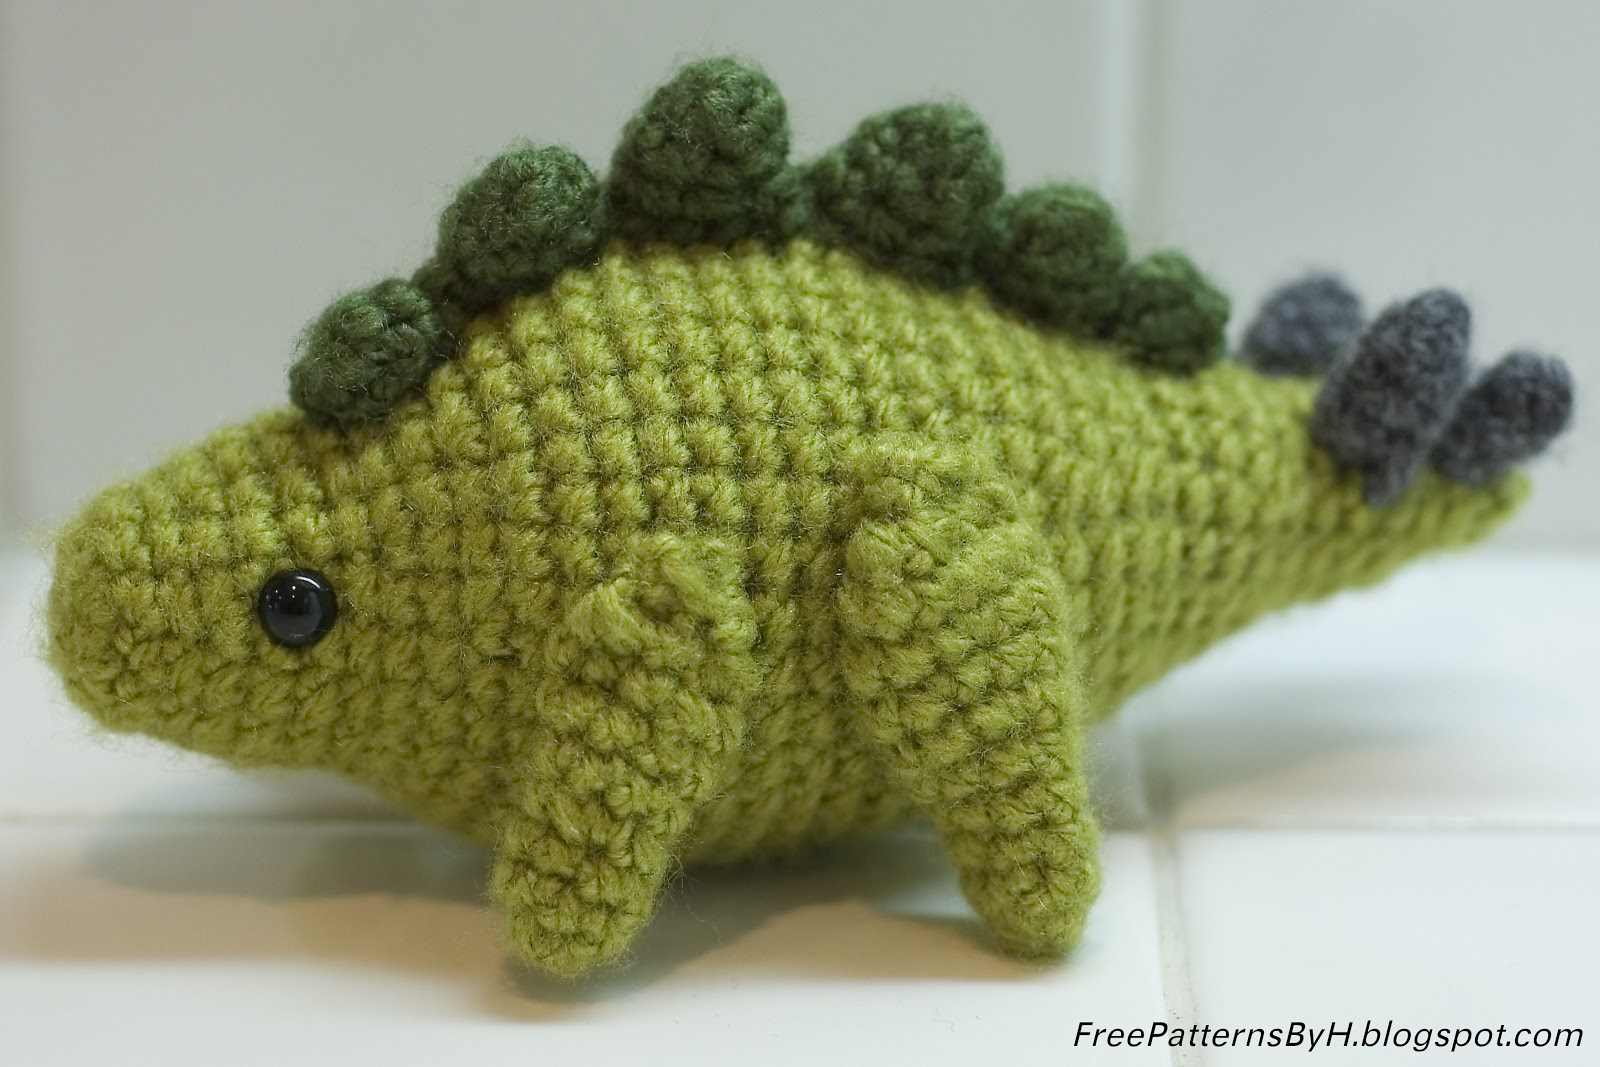 Crochet Dinosaur : Or Free Crochet Pattern Stuffed Dinosaur a brand yarnall your site or ...